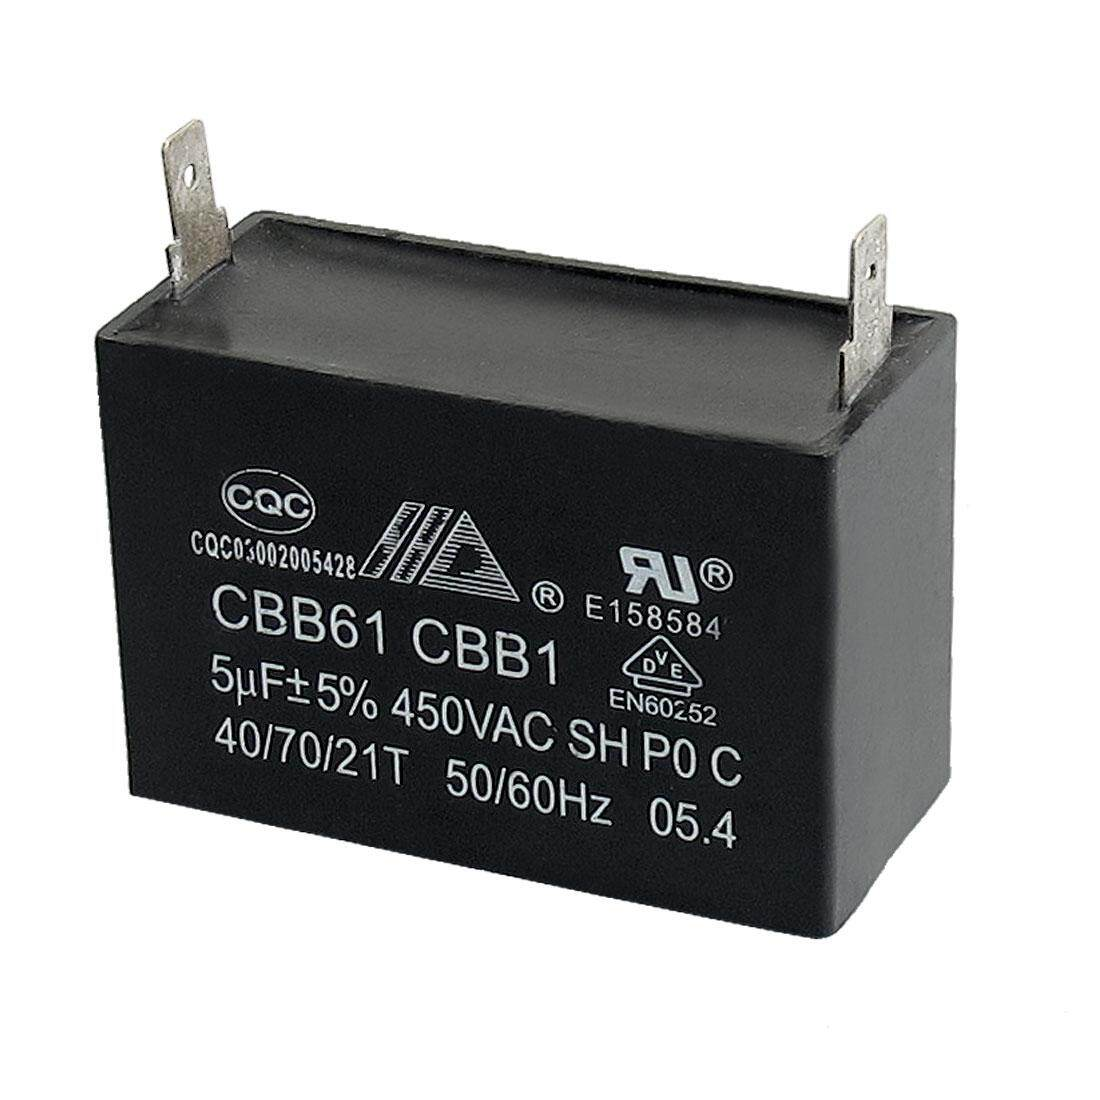 Buy Sell Cheapest Axa 450v Ac Best Quality Product Deals How To Wire 2wired Capacitor With Motor Of A Fan Cbb61 5uf 50 60hz 2 Terminals Run